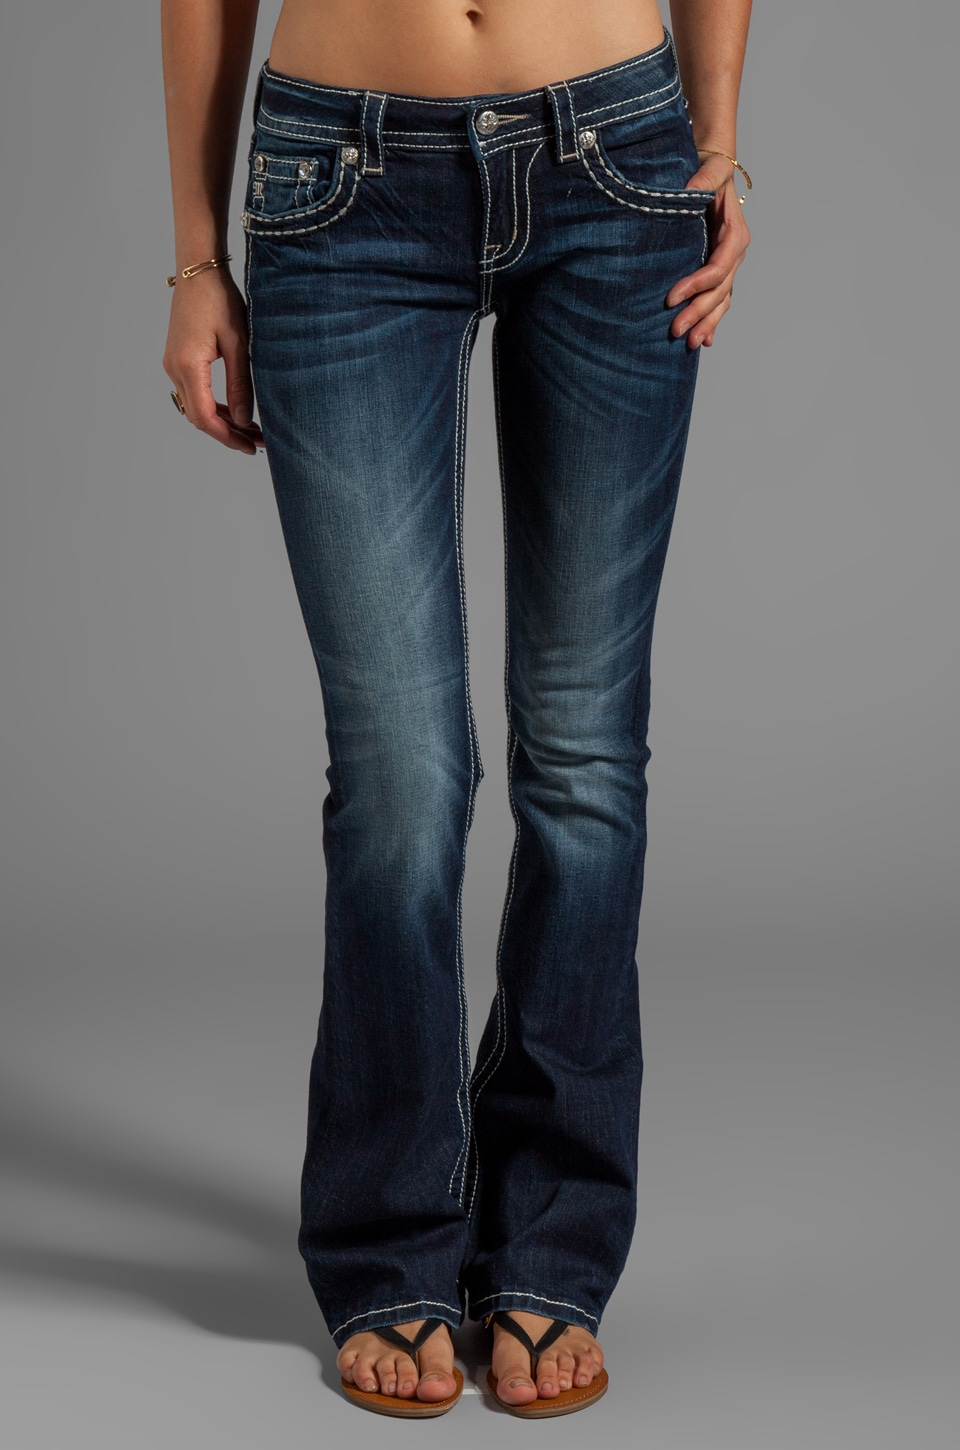 Miss Me Jeans Bootcut in DK216